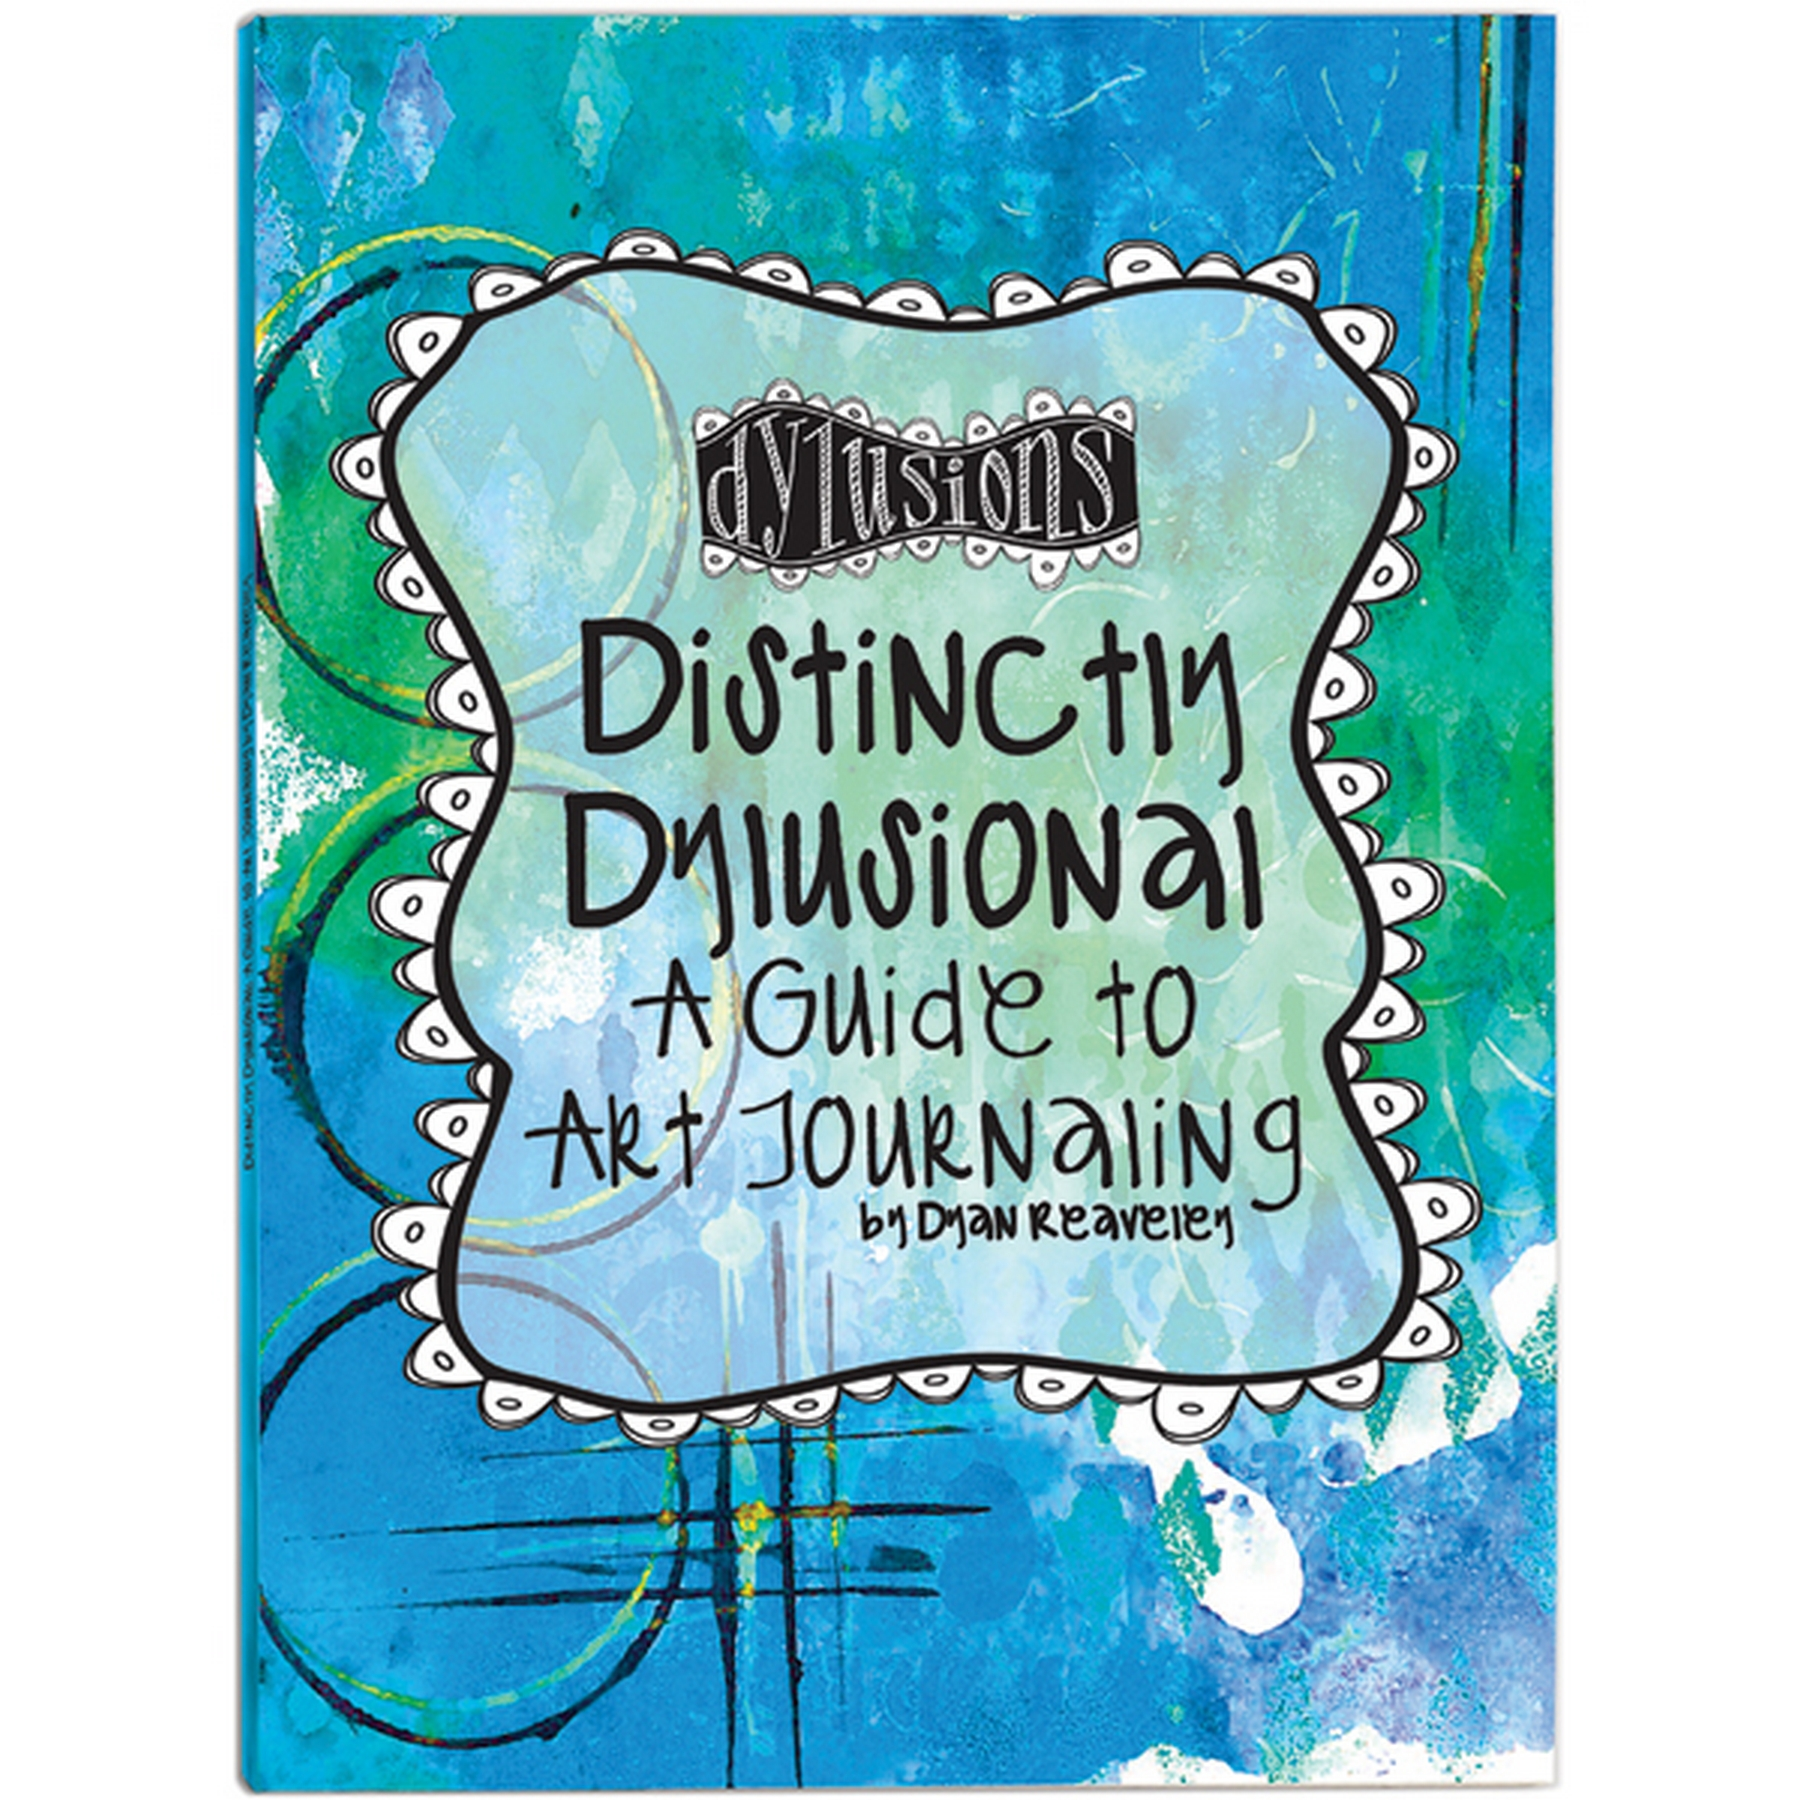 Distinctly Dylusional - A Guide To Art Journaling PartNumber: 021V009131399000P KsnValue: 9131399 MfgPartNumber: 322041